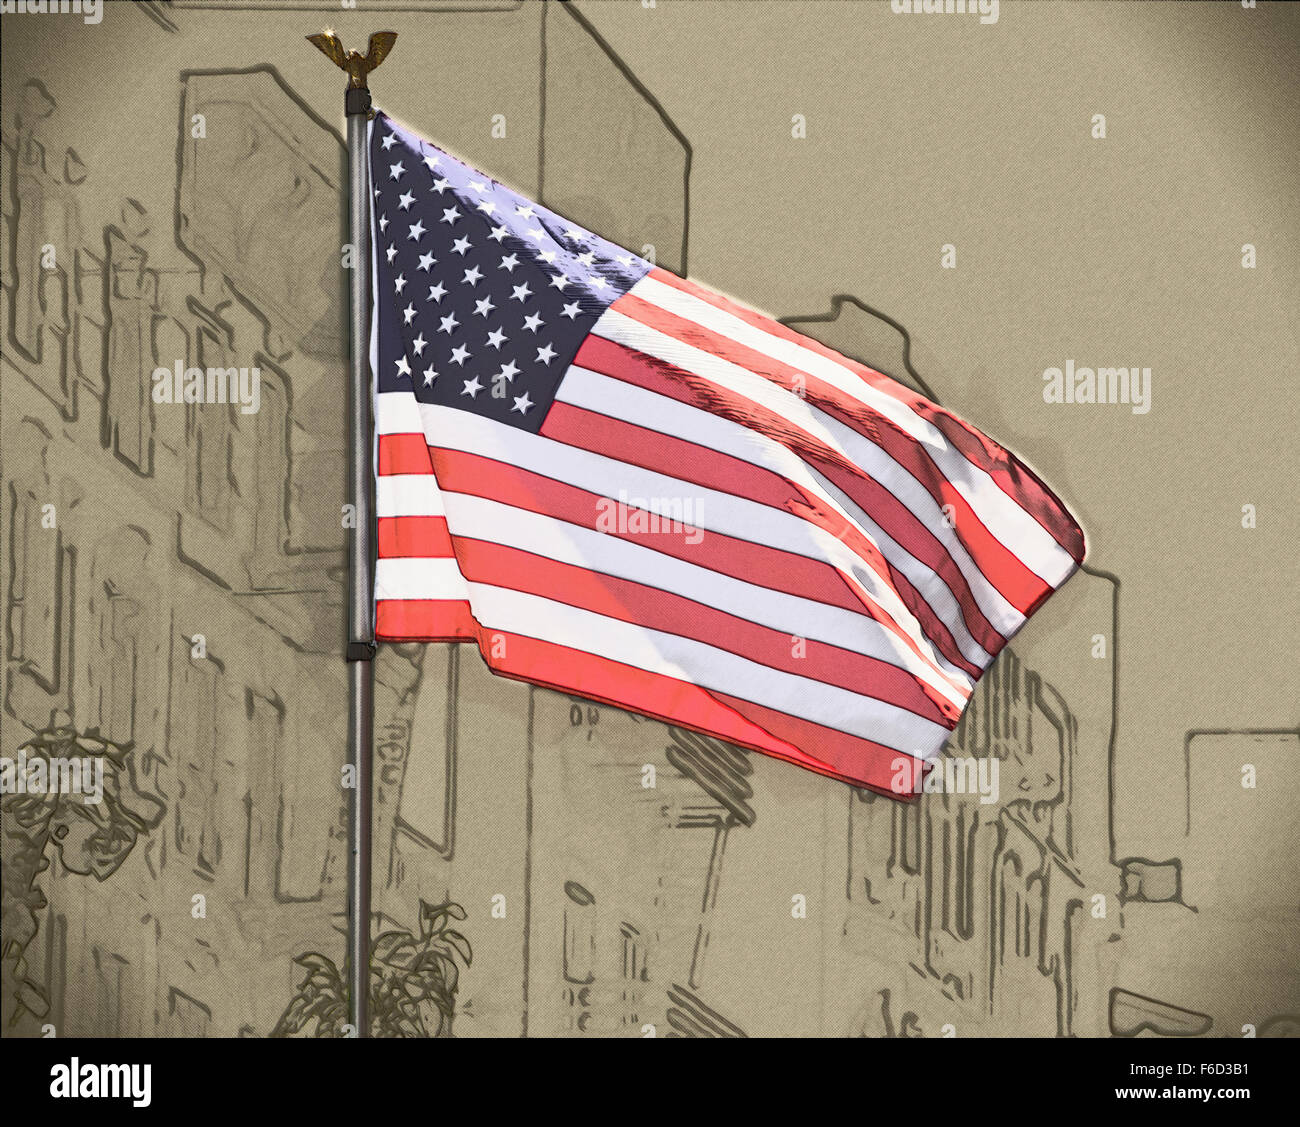 Drawing Of Usa Flag Waving In The Wind Stock Photo 90027813 Alamy